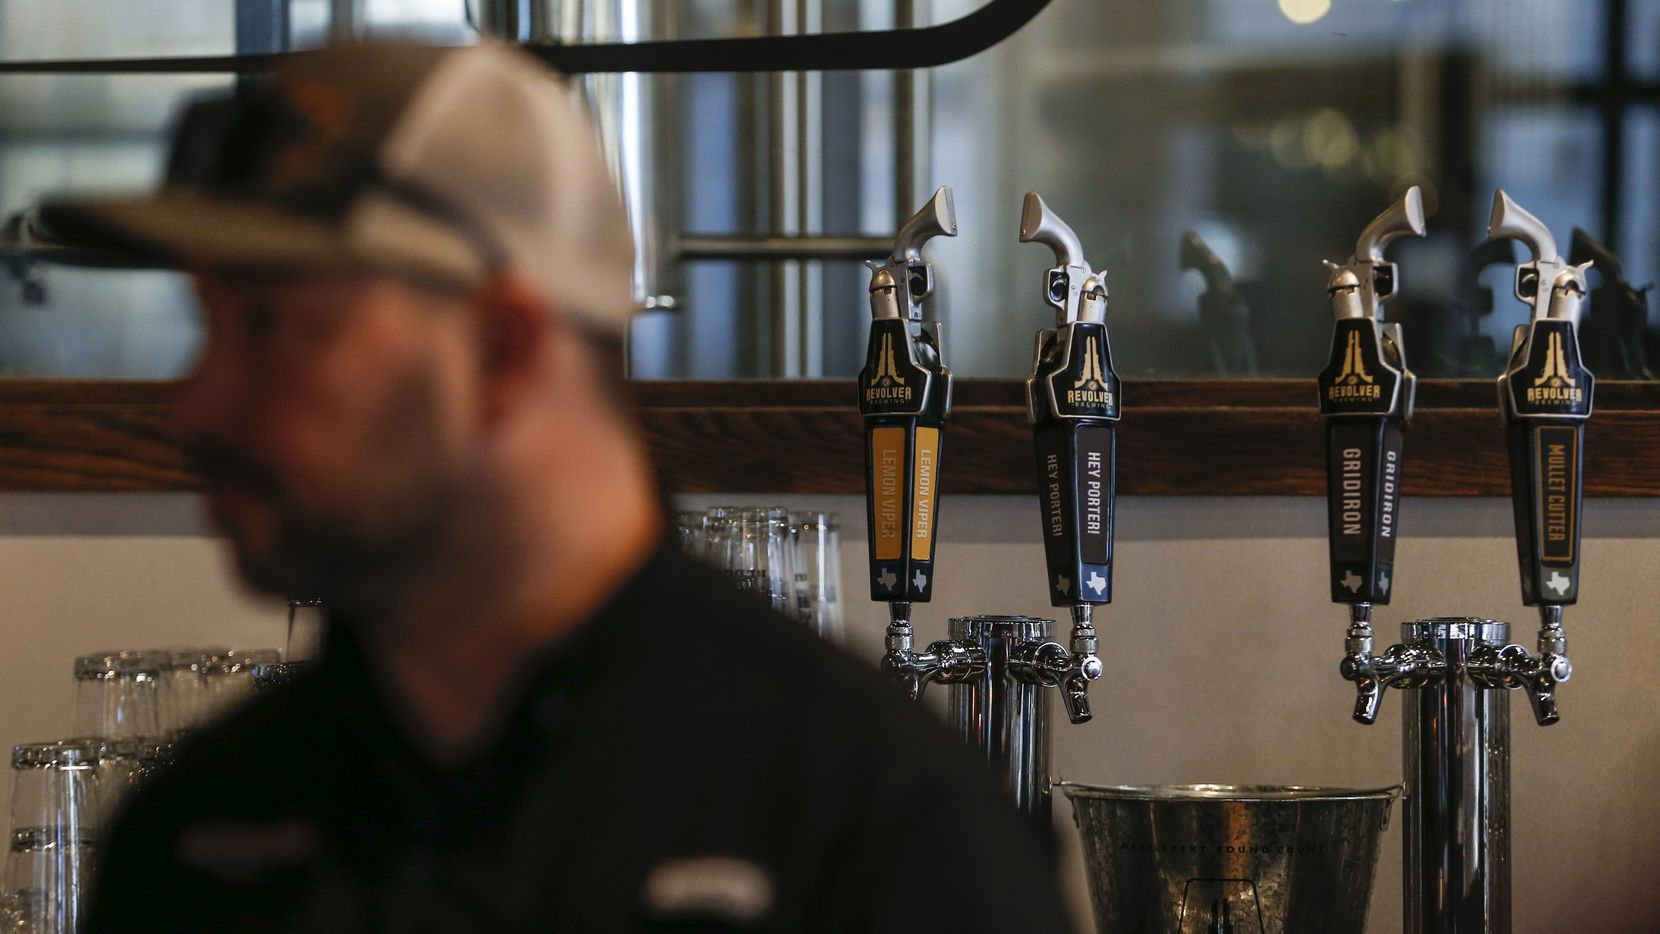 Beer taps are seen at Revolver Brewing BLDG 5, a new working brewery at Texas Live.